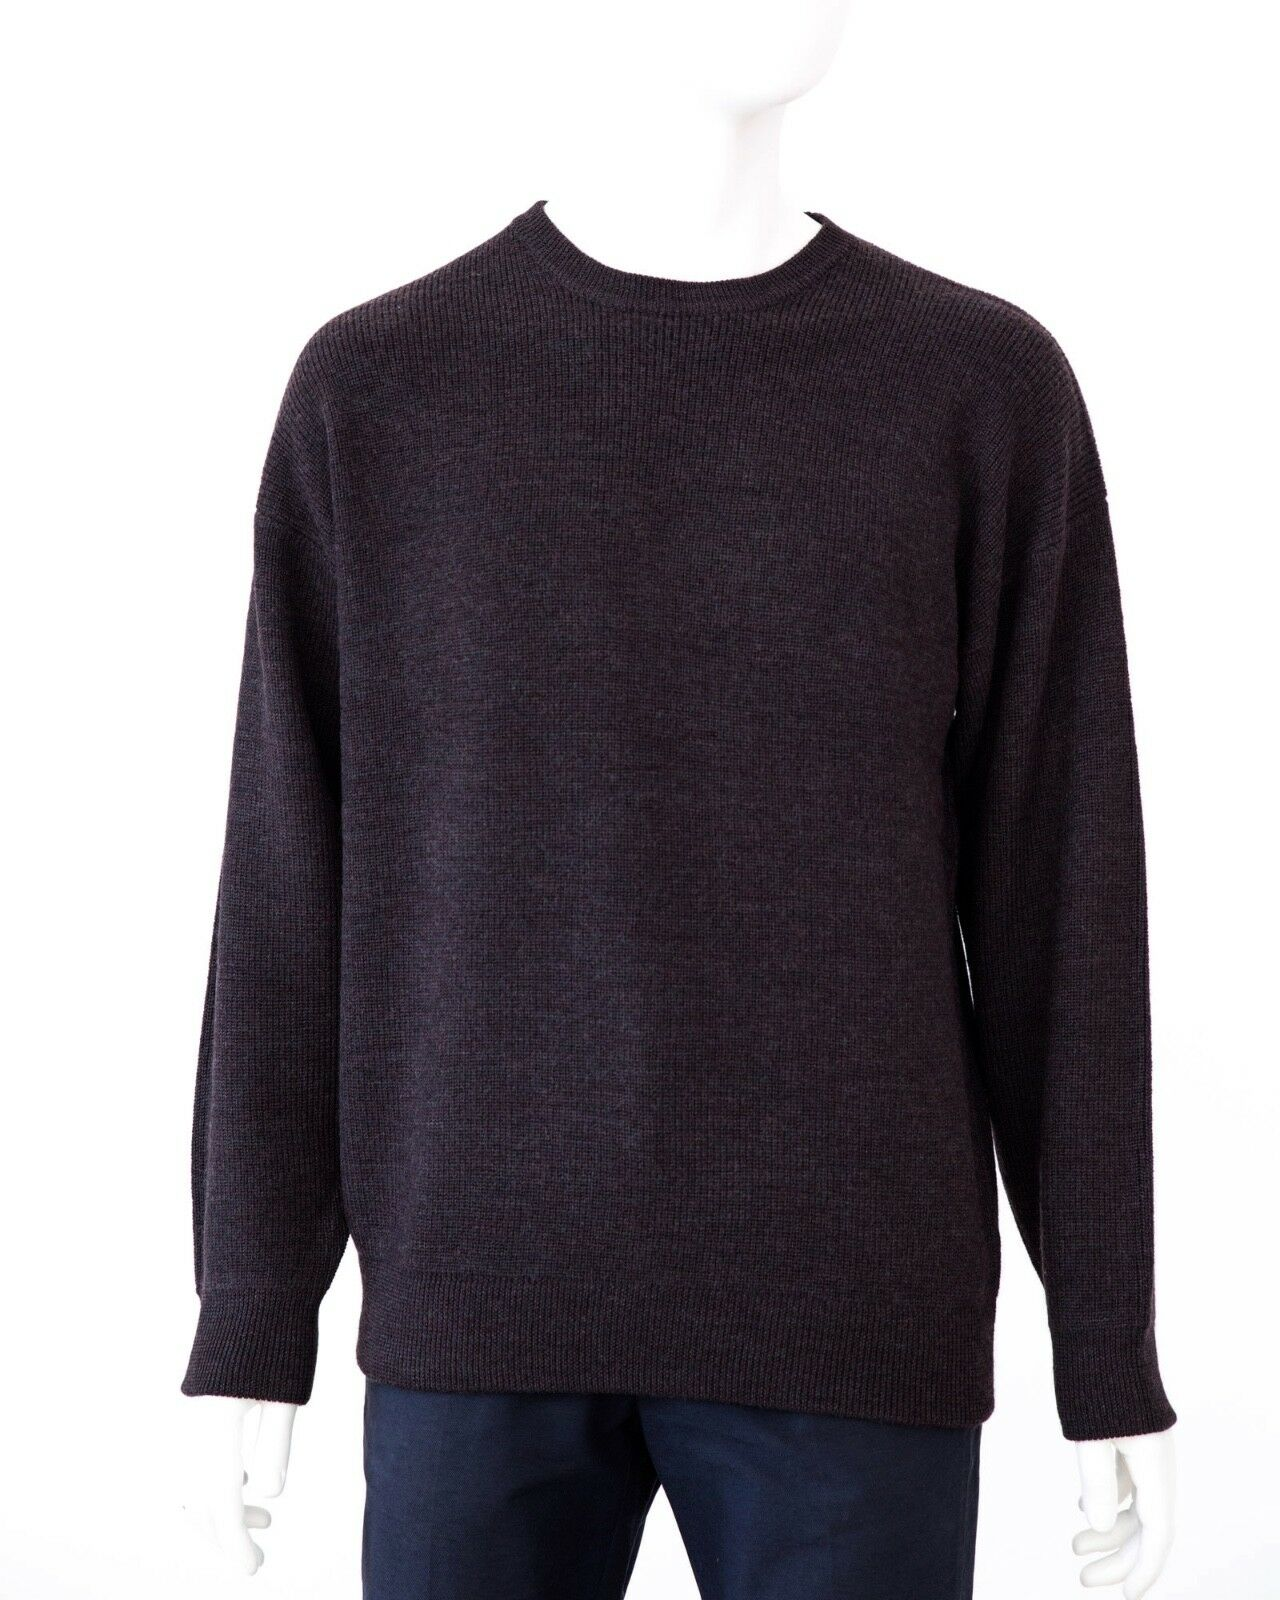 Timber Braun Coffee Ansett Pure Wool Fisherman Rib Jumper Knitwear Sweater